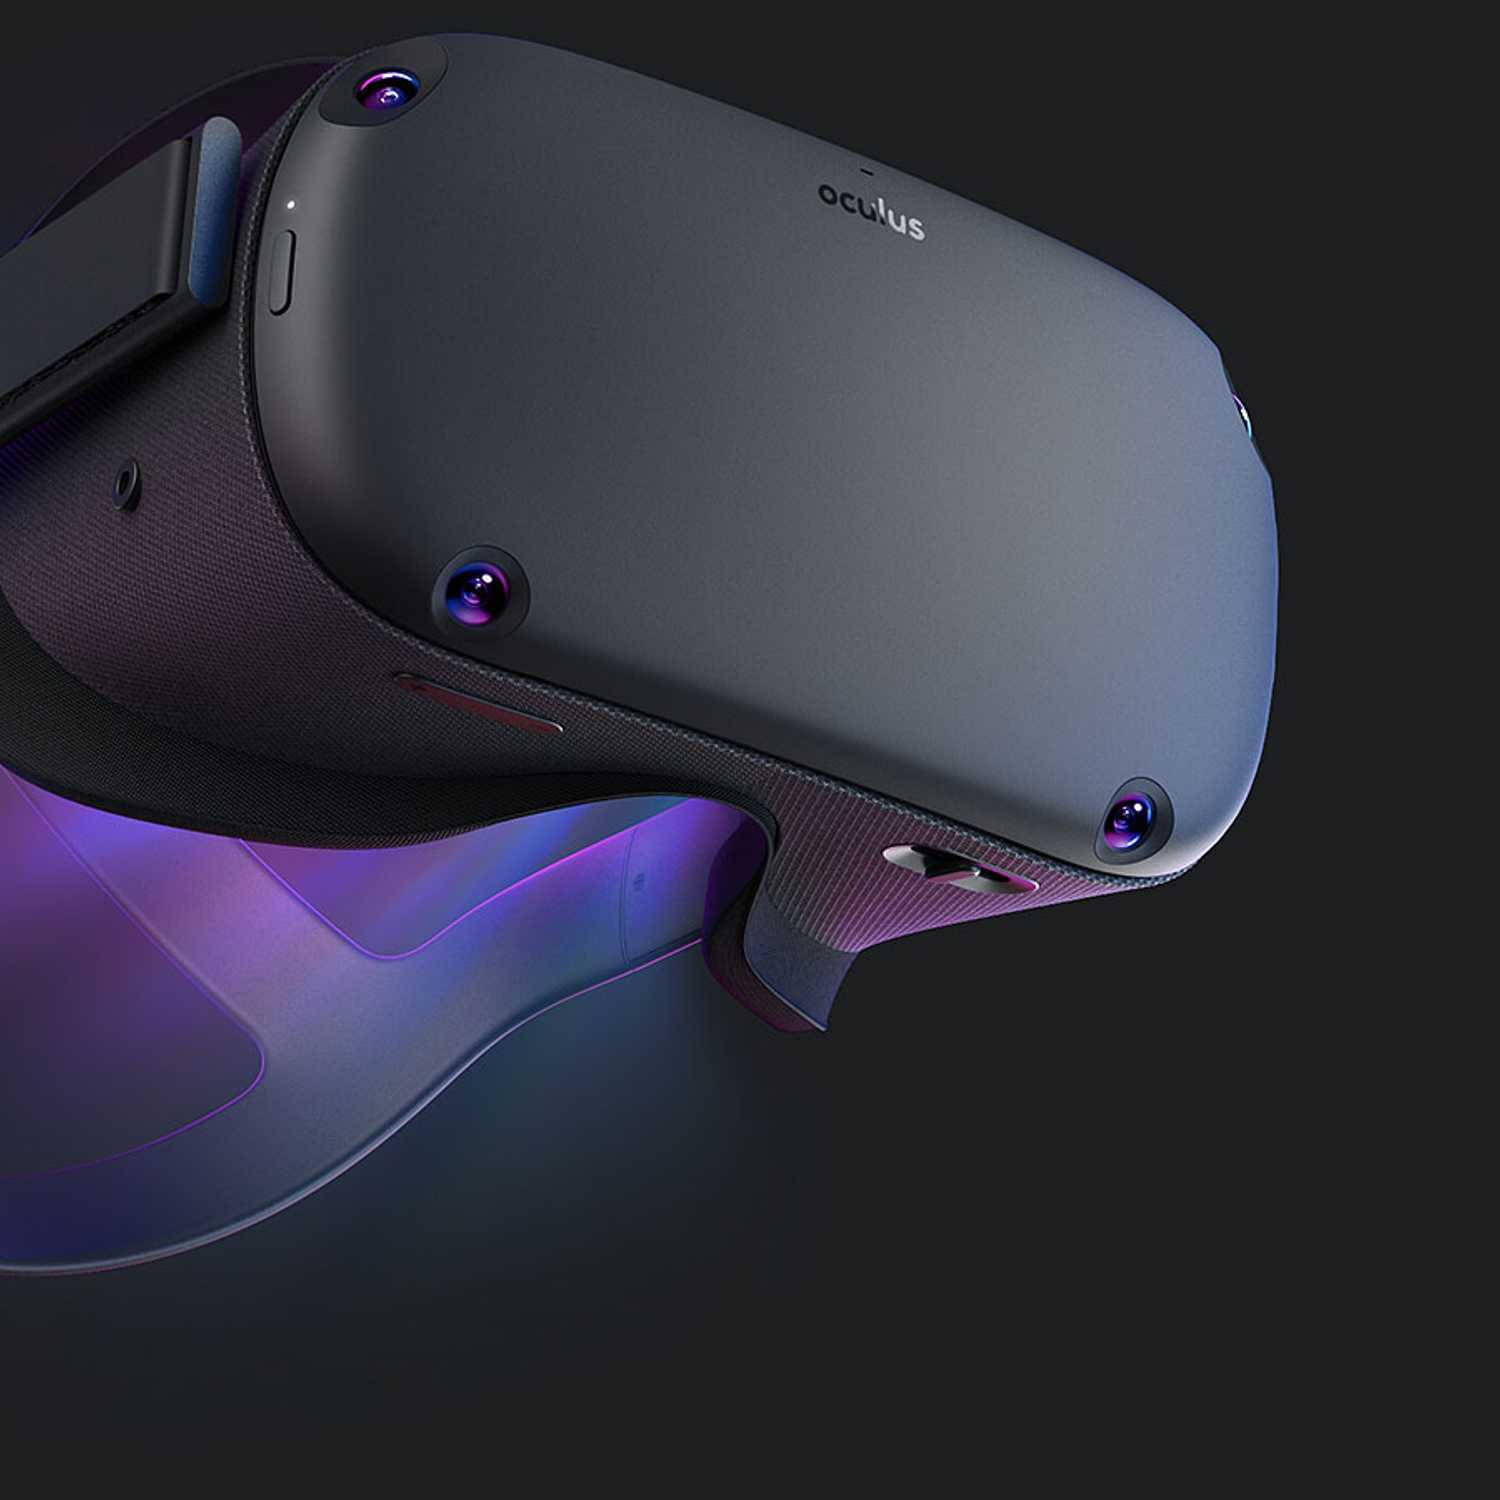 Developing For The Oculus Quest Jeff Rafter